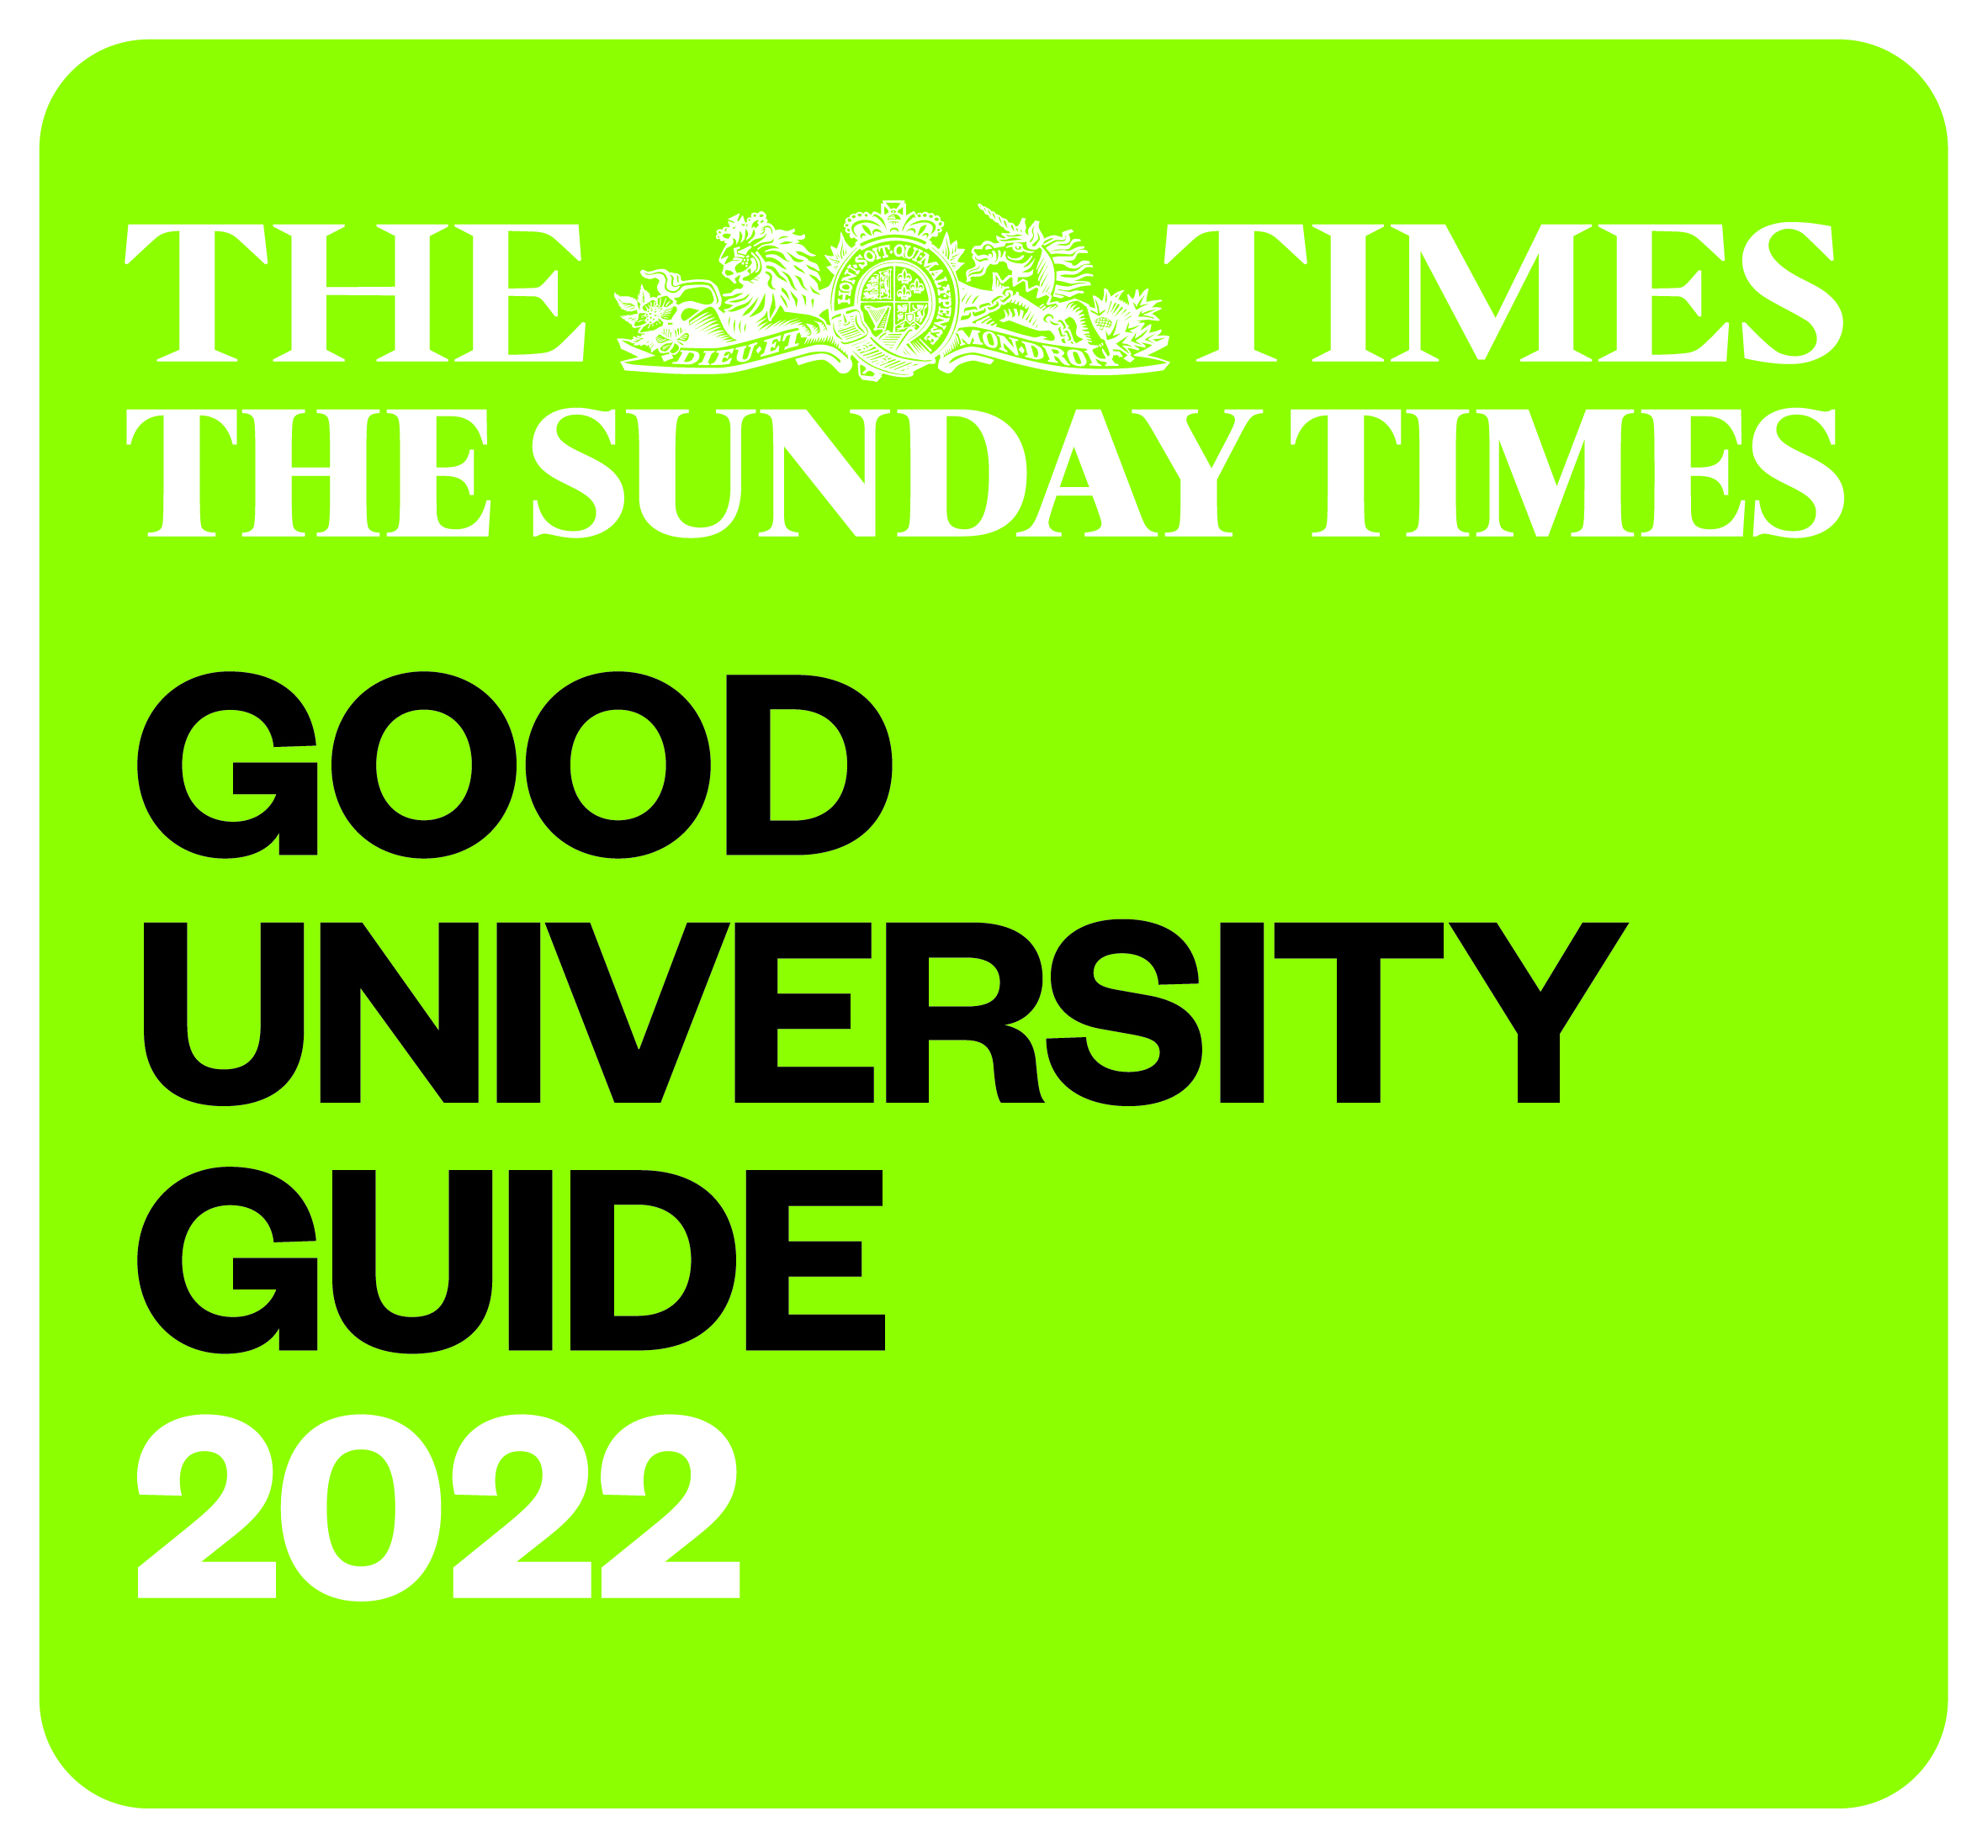 The Times and Sunday Times Good University Guide 2022